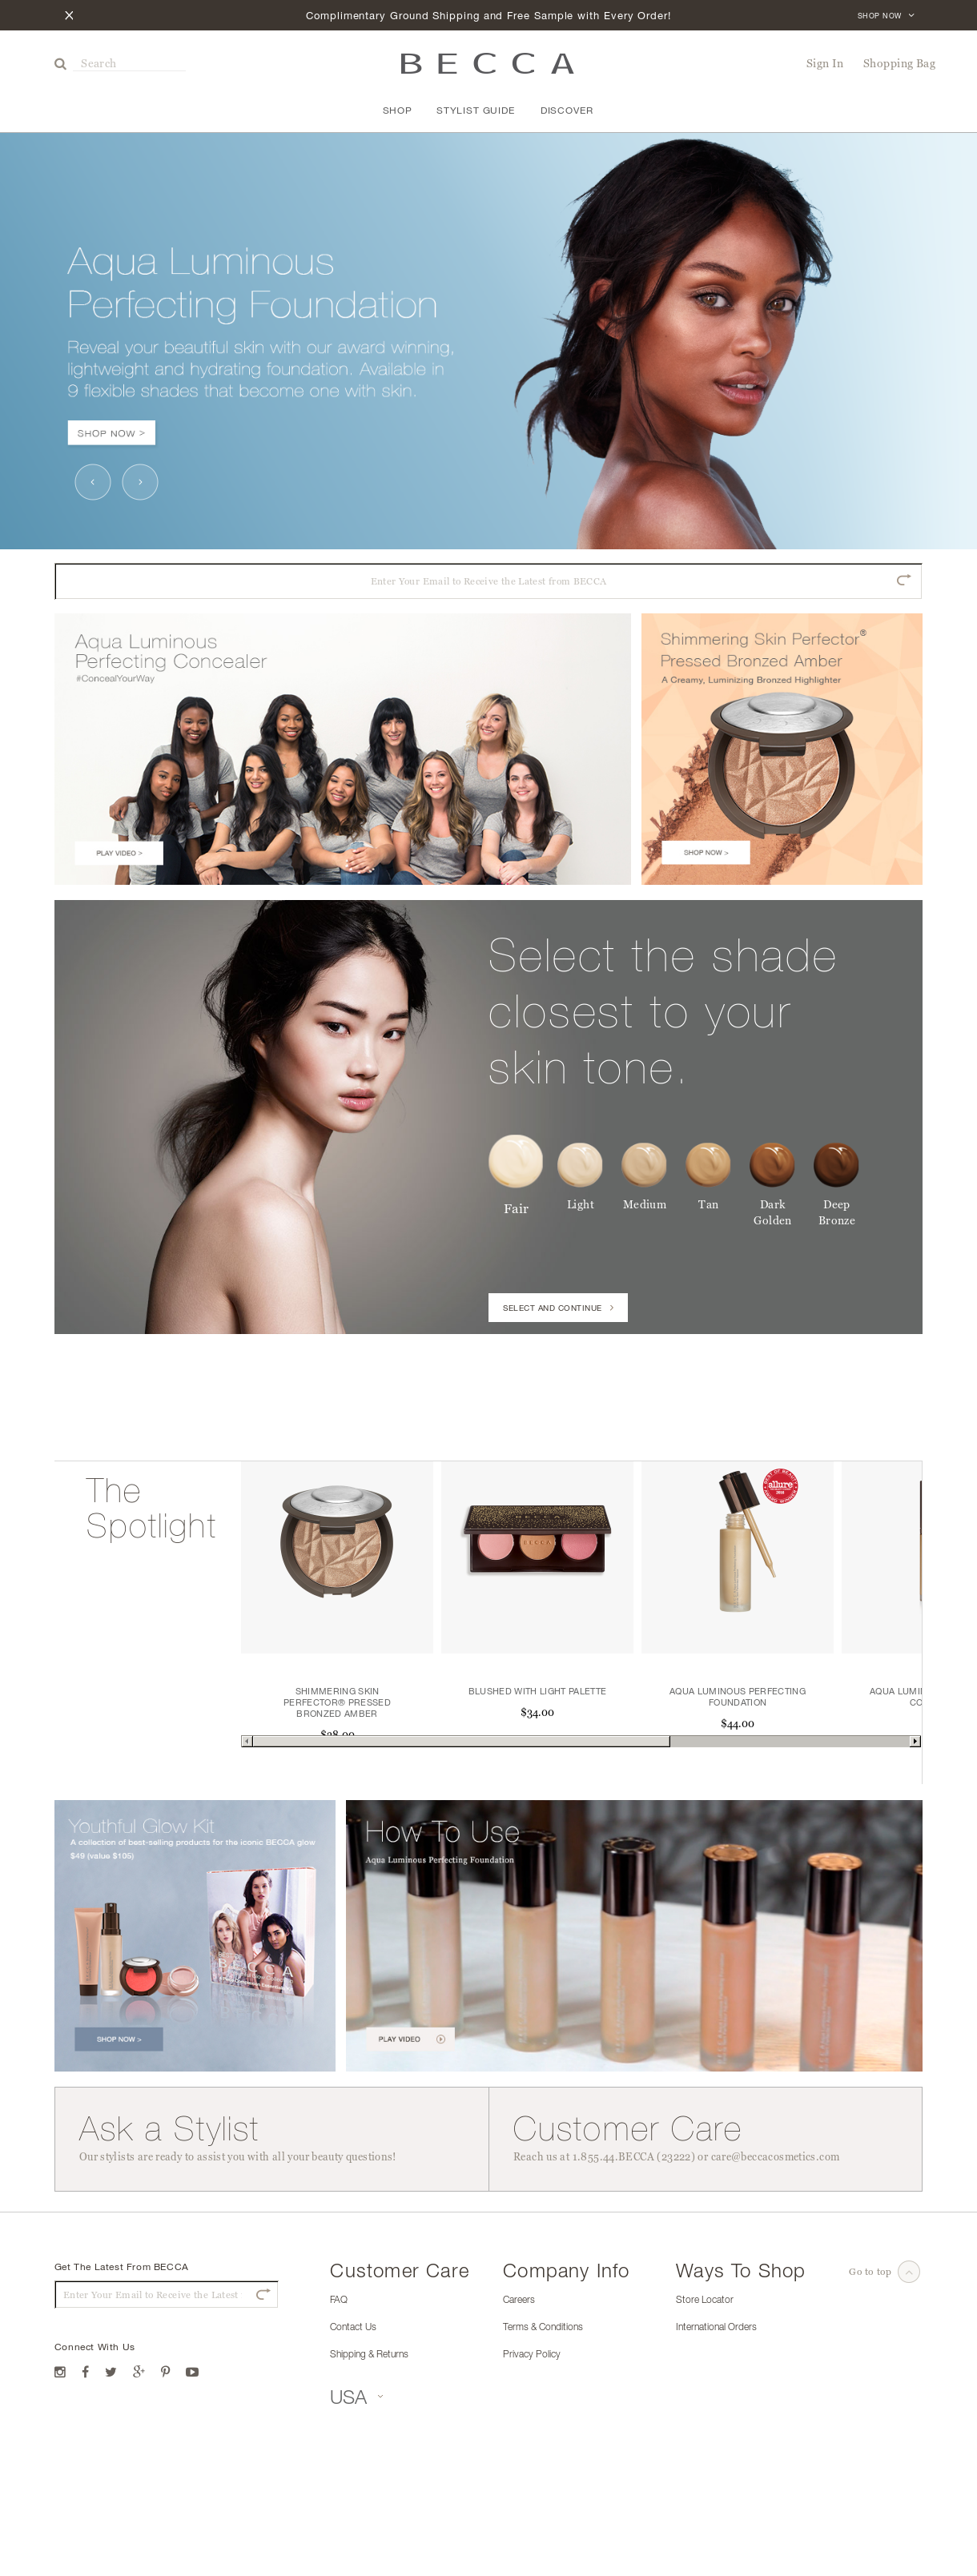 Ignite Liquified Light Face & Body Highlighter by BECCA #7